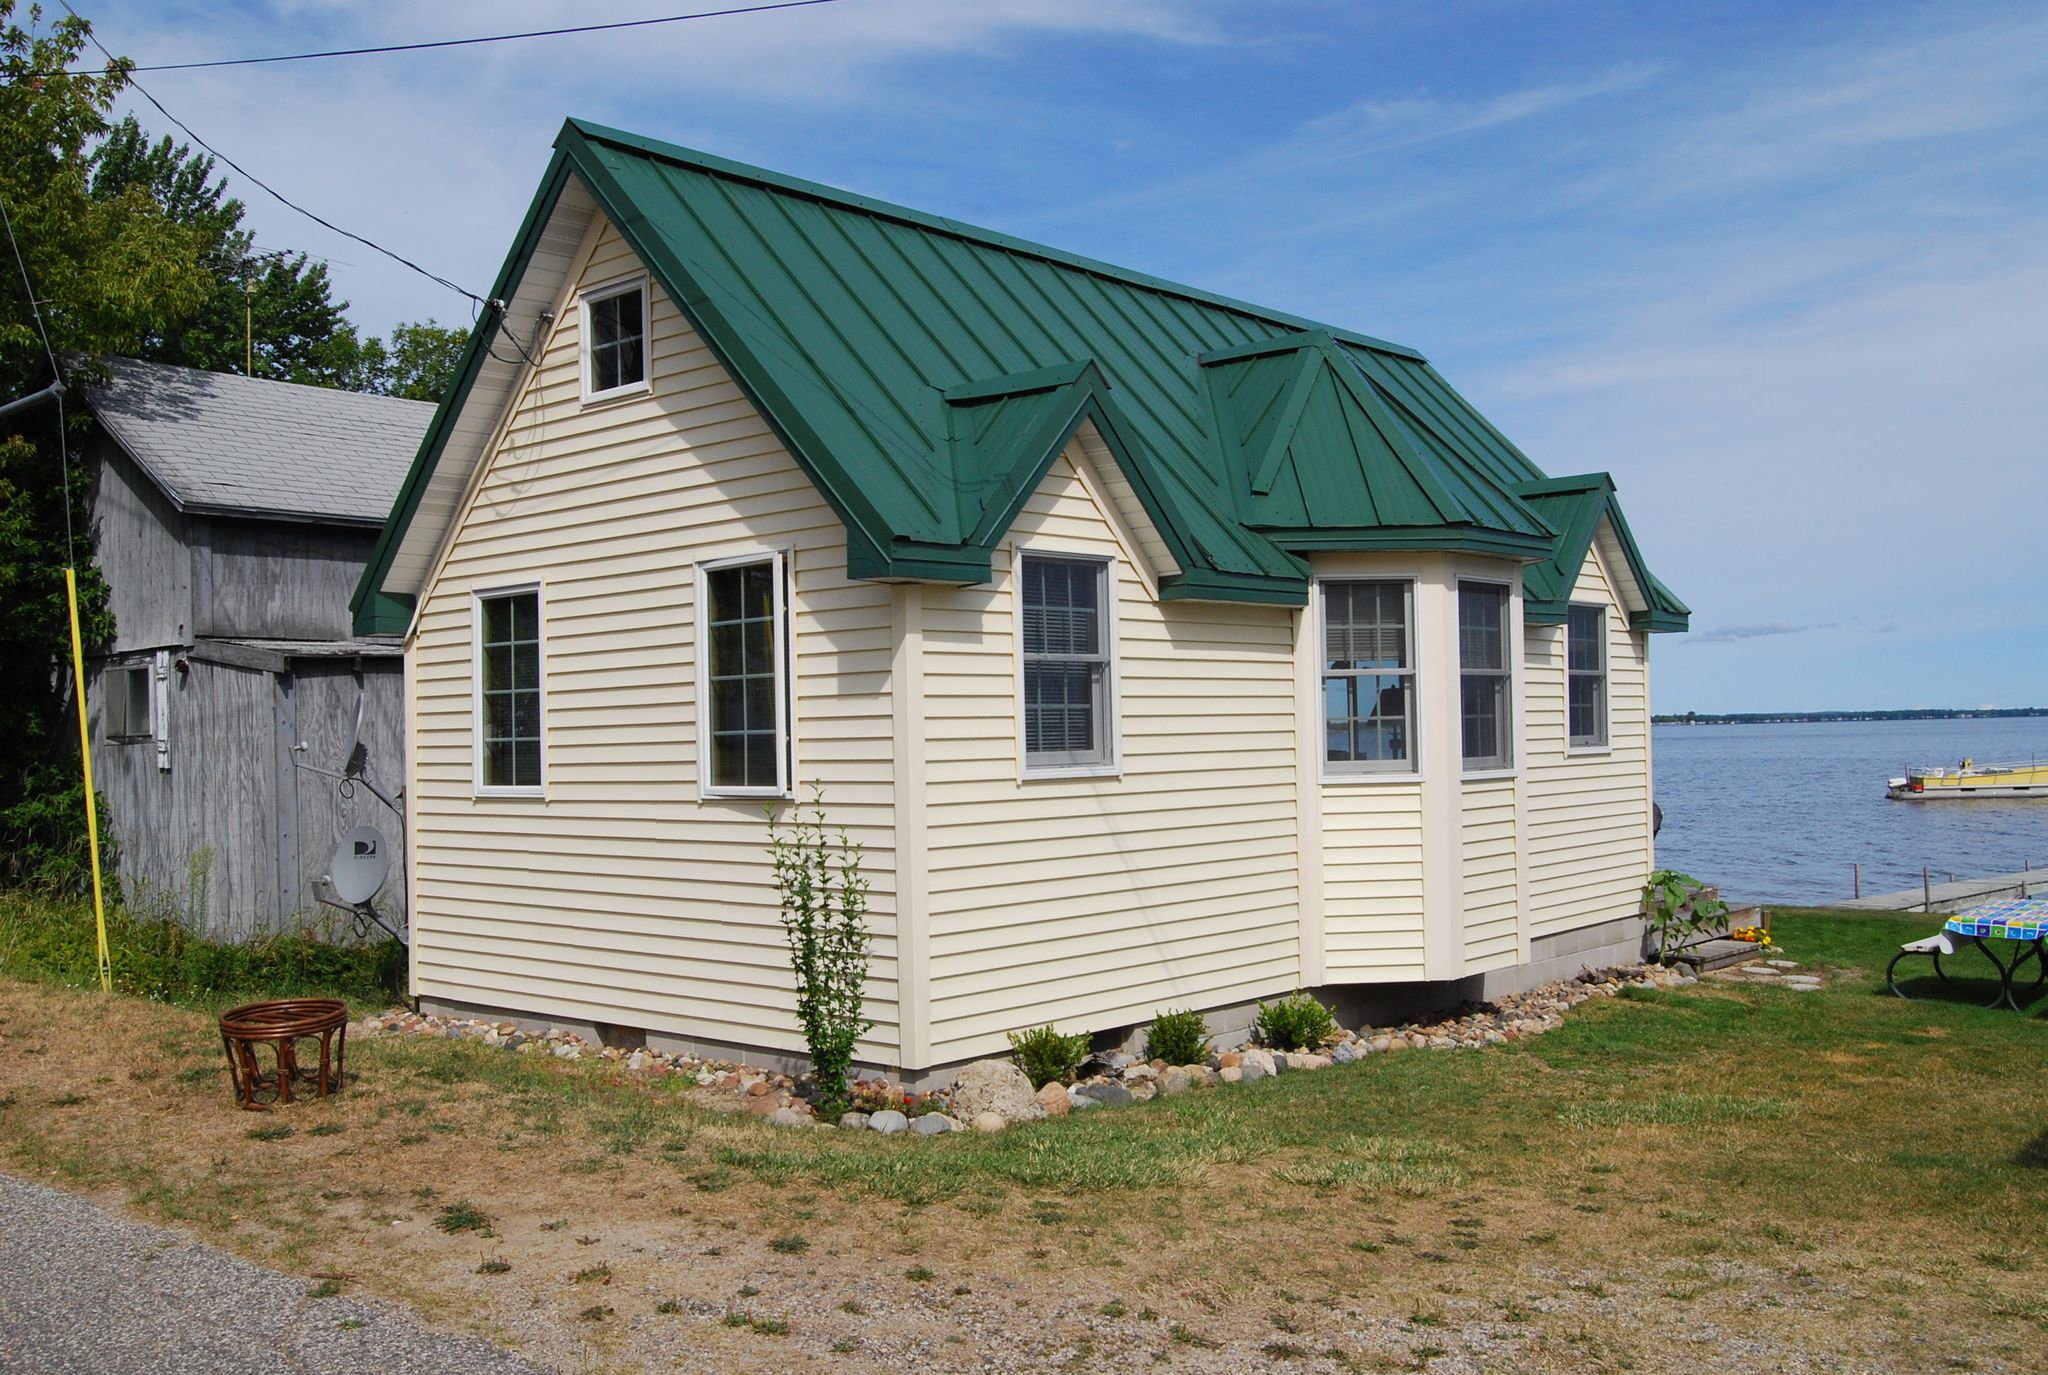 houghton details harrison home p ave estimate n and cabin lake harding rentals mi cabins